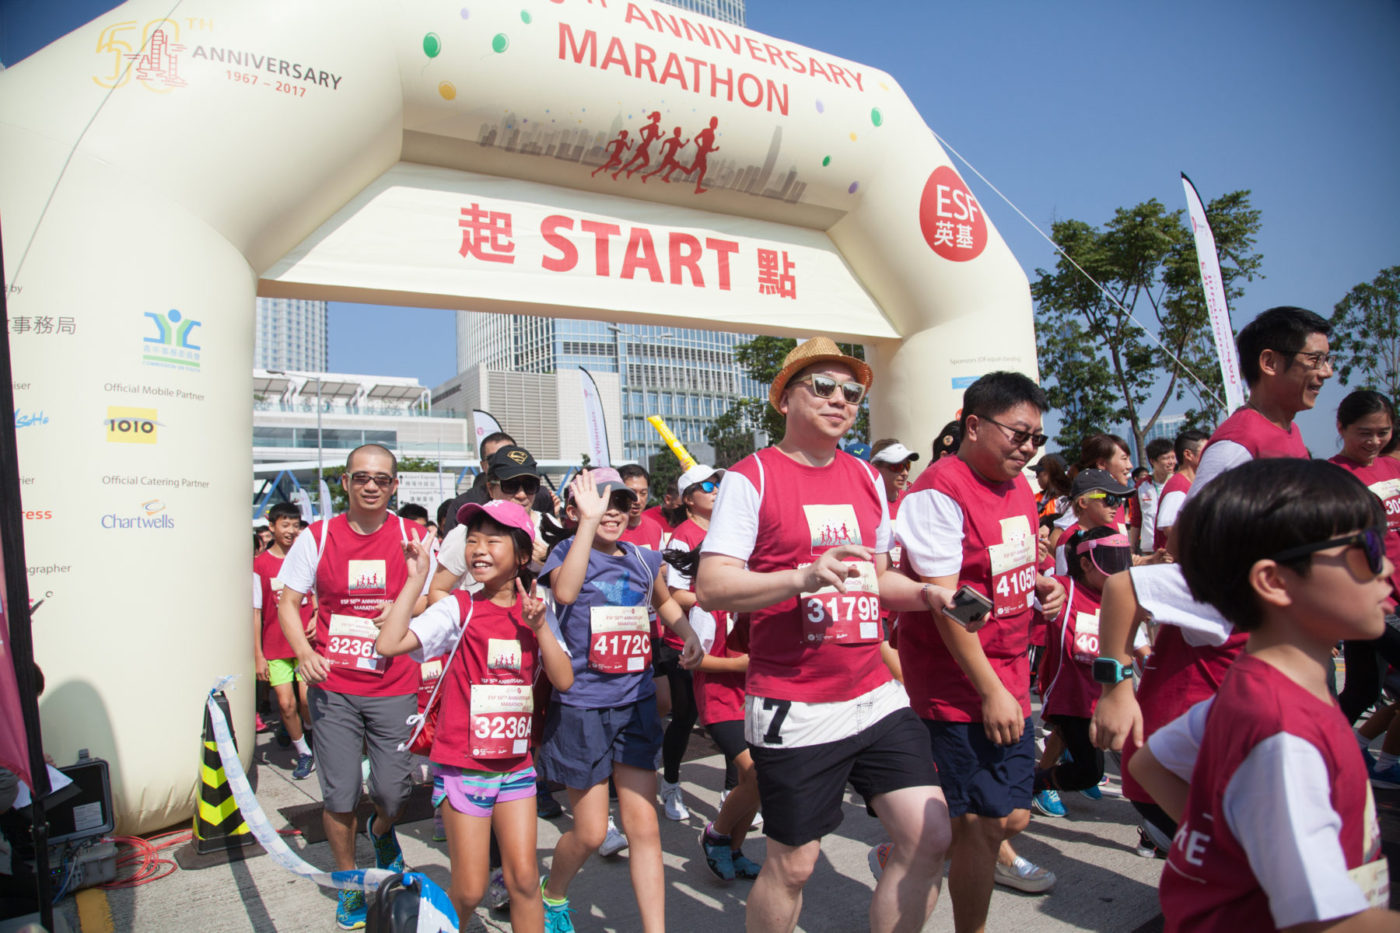 ESF Hong Kong Run 2018 will return this year on 28 October at Central Harbourfront.